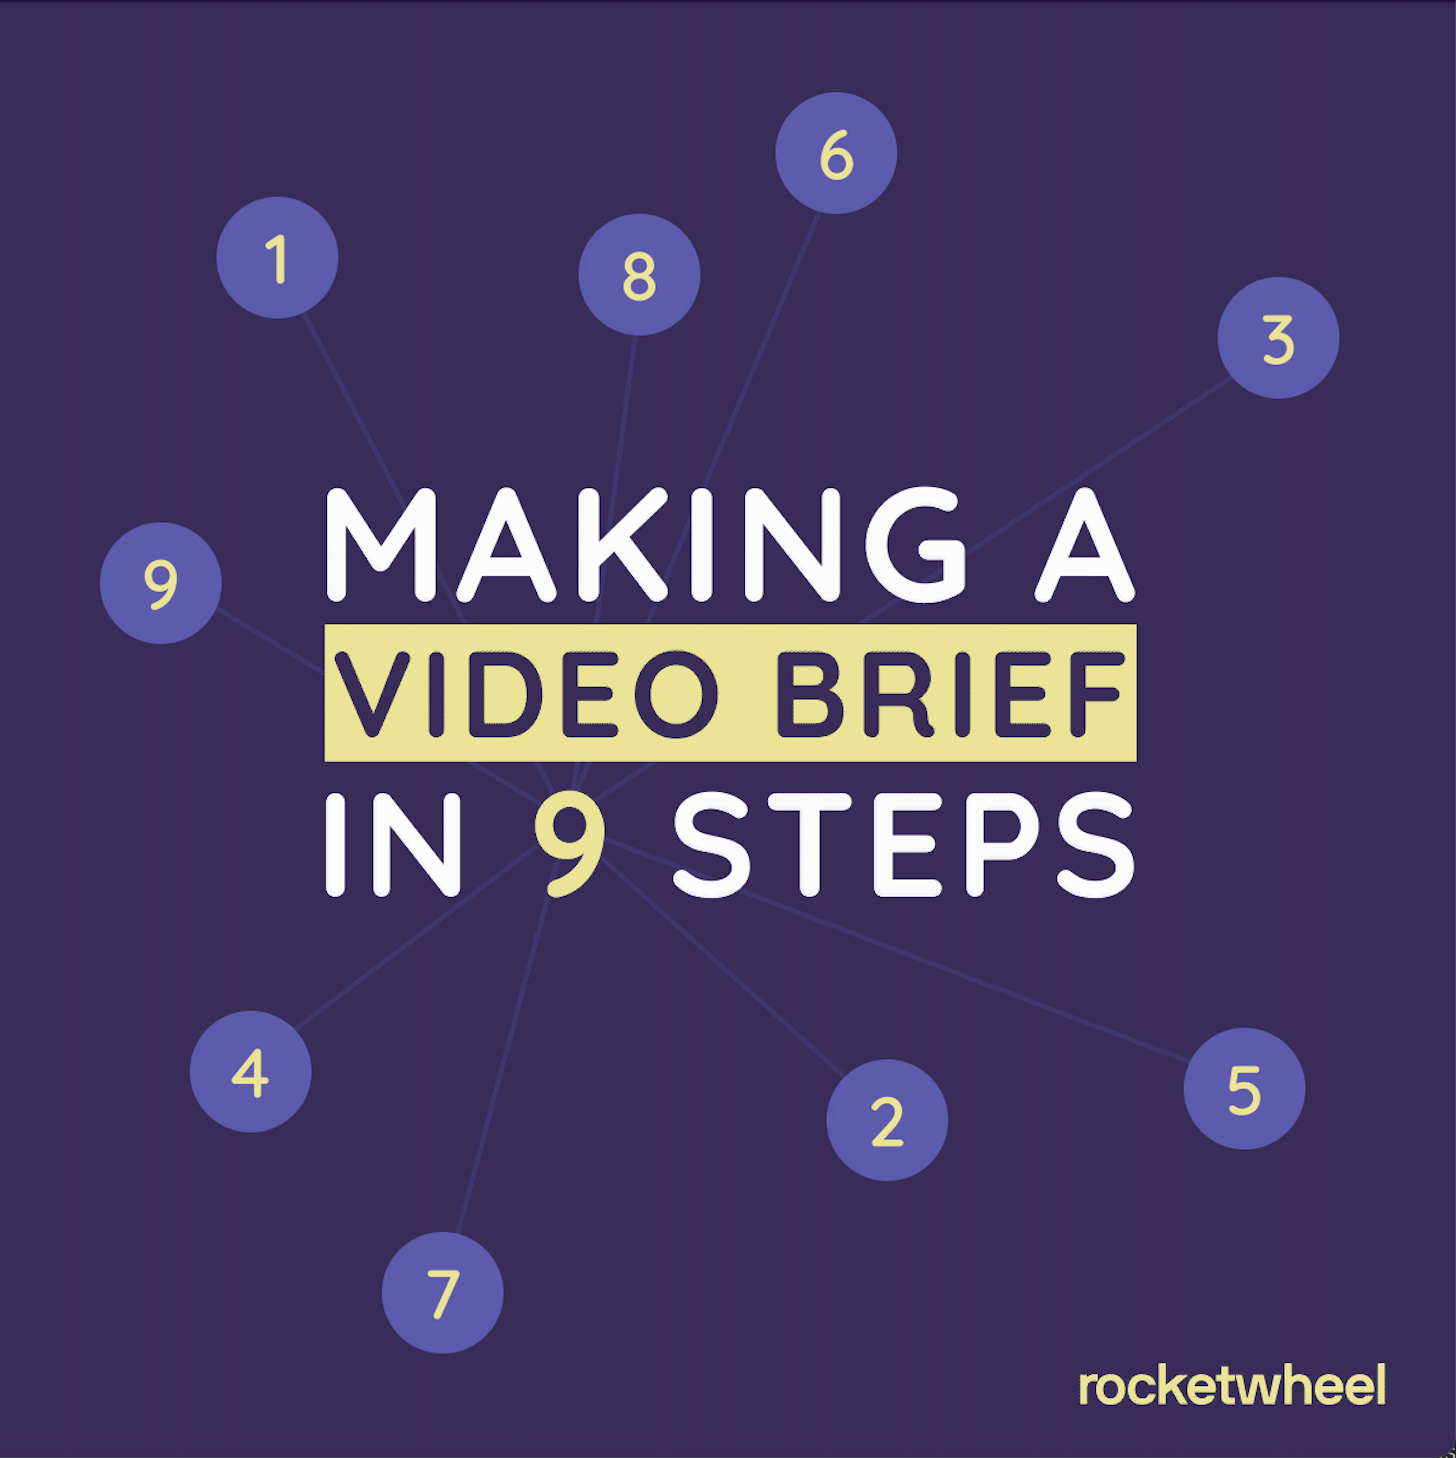 Making an explainer video brief in 9 steps